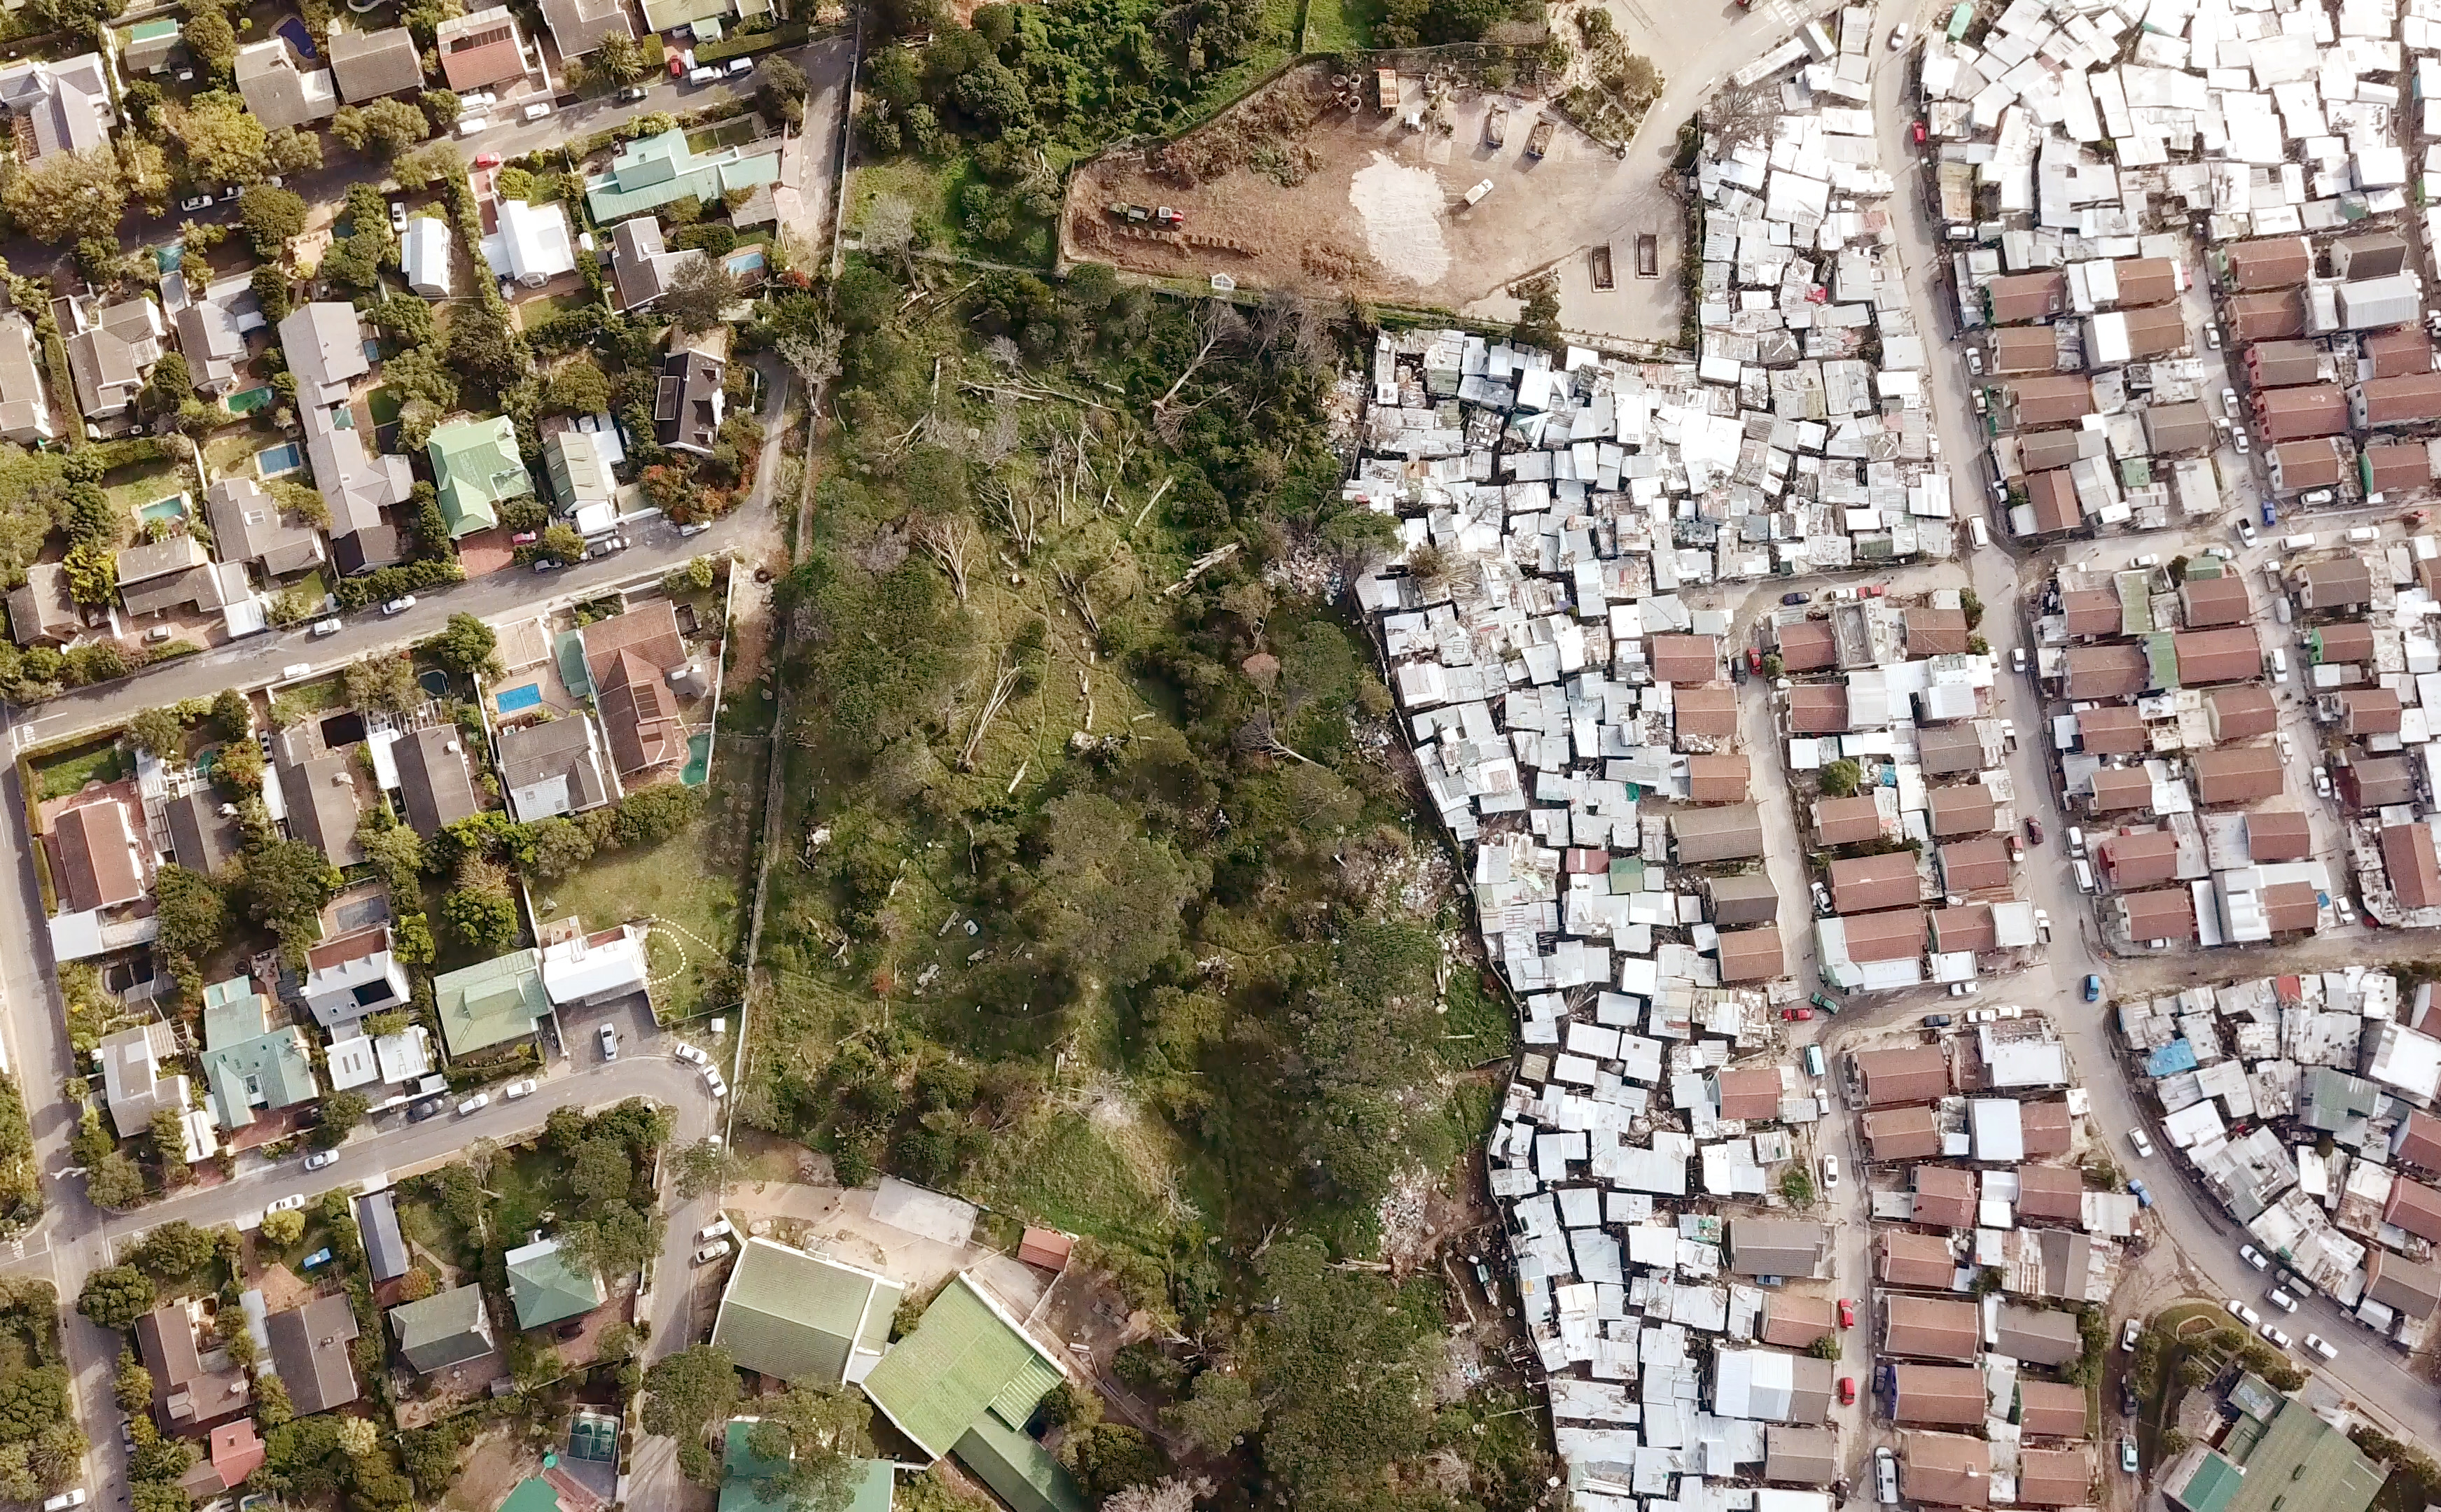 South African township from above